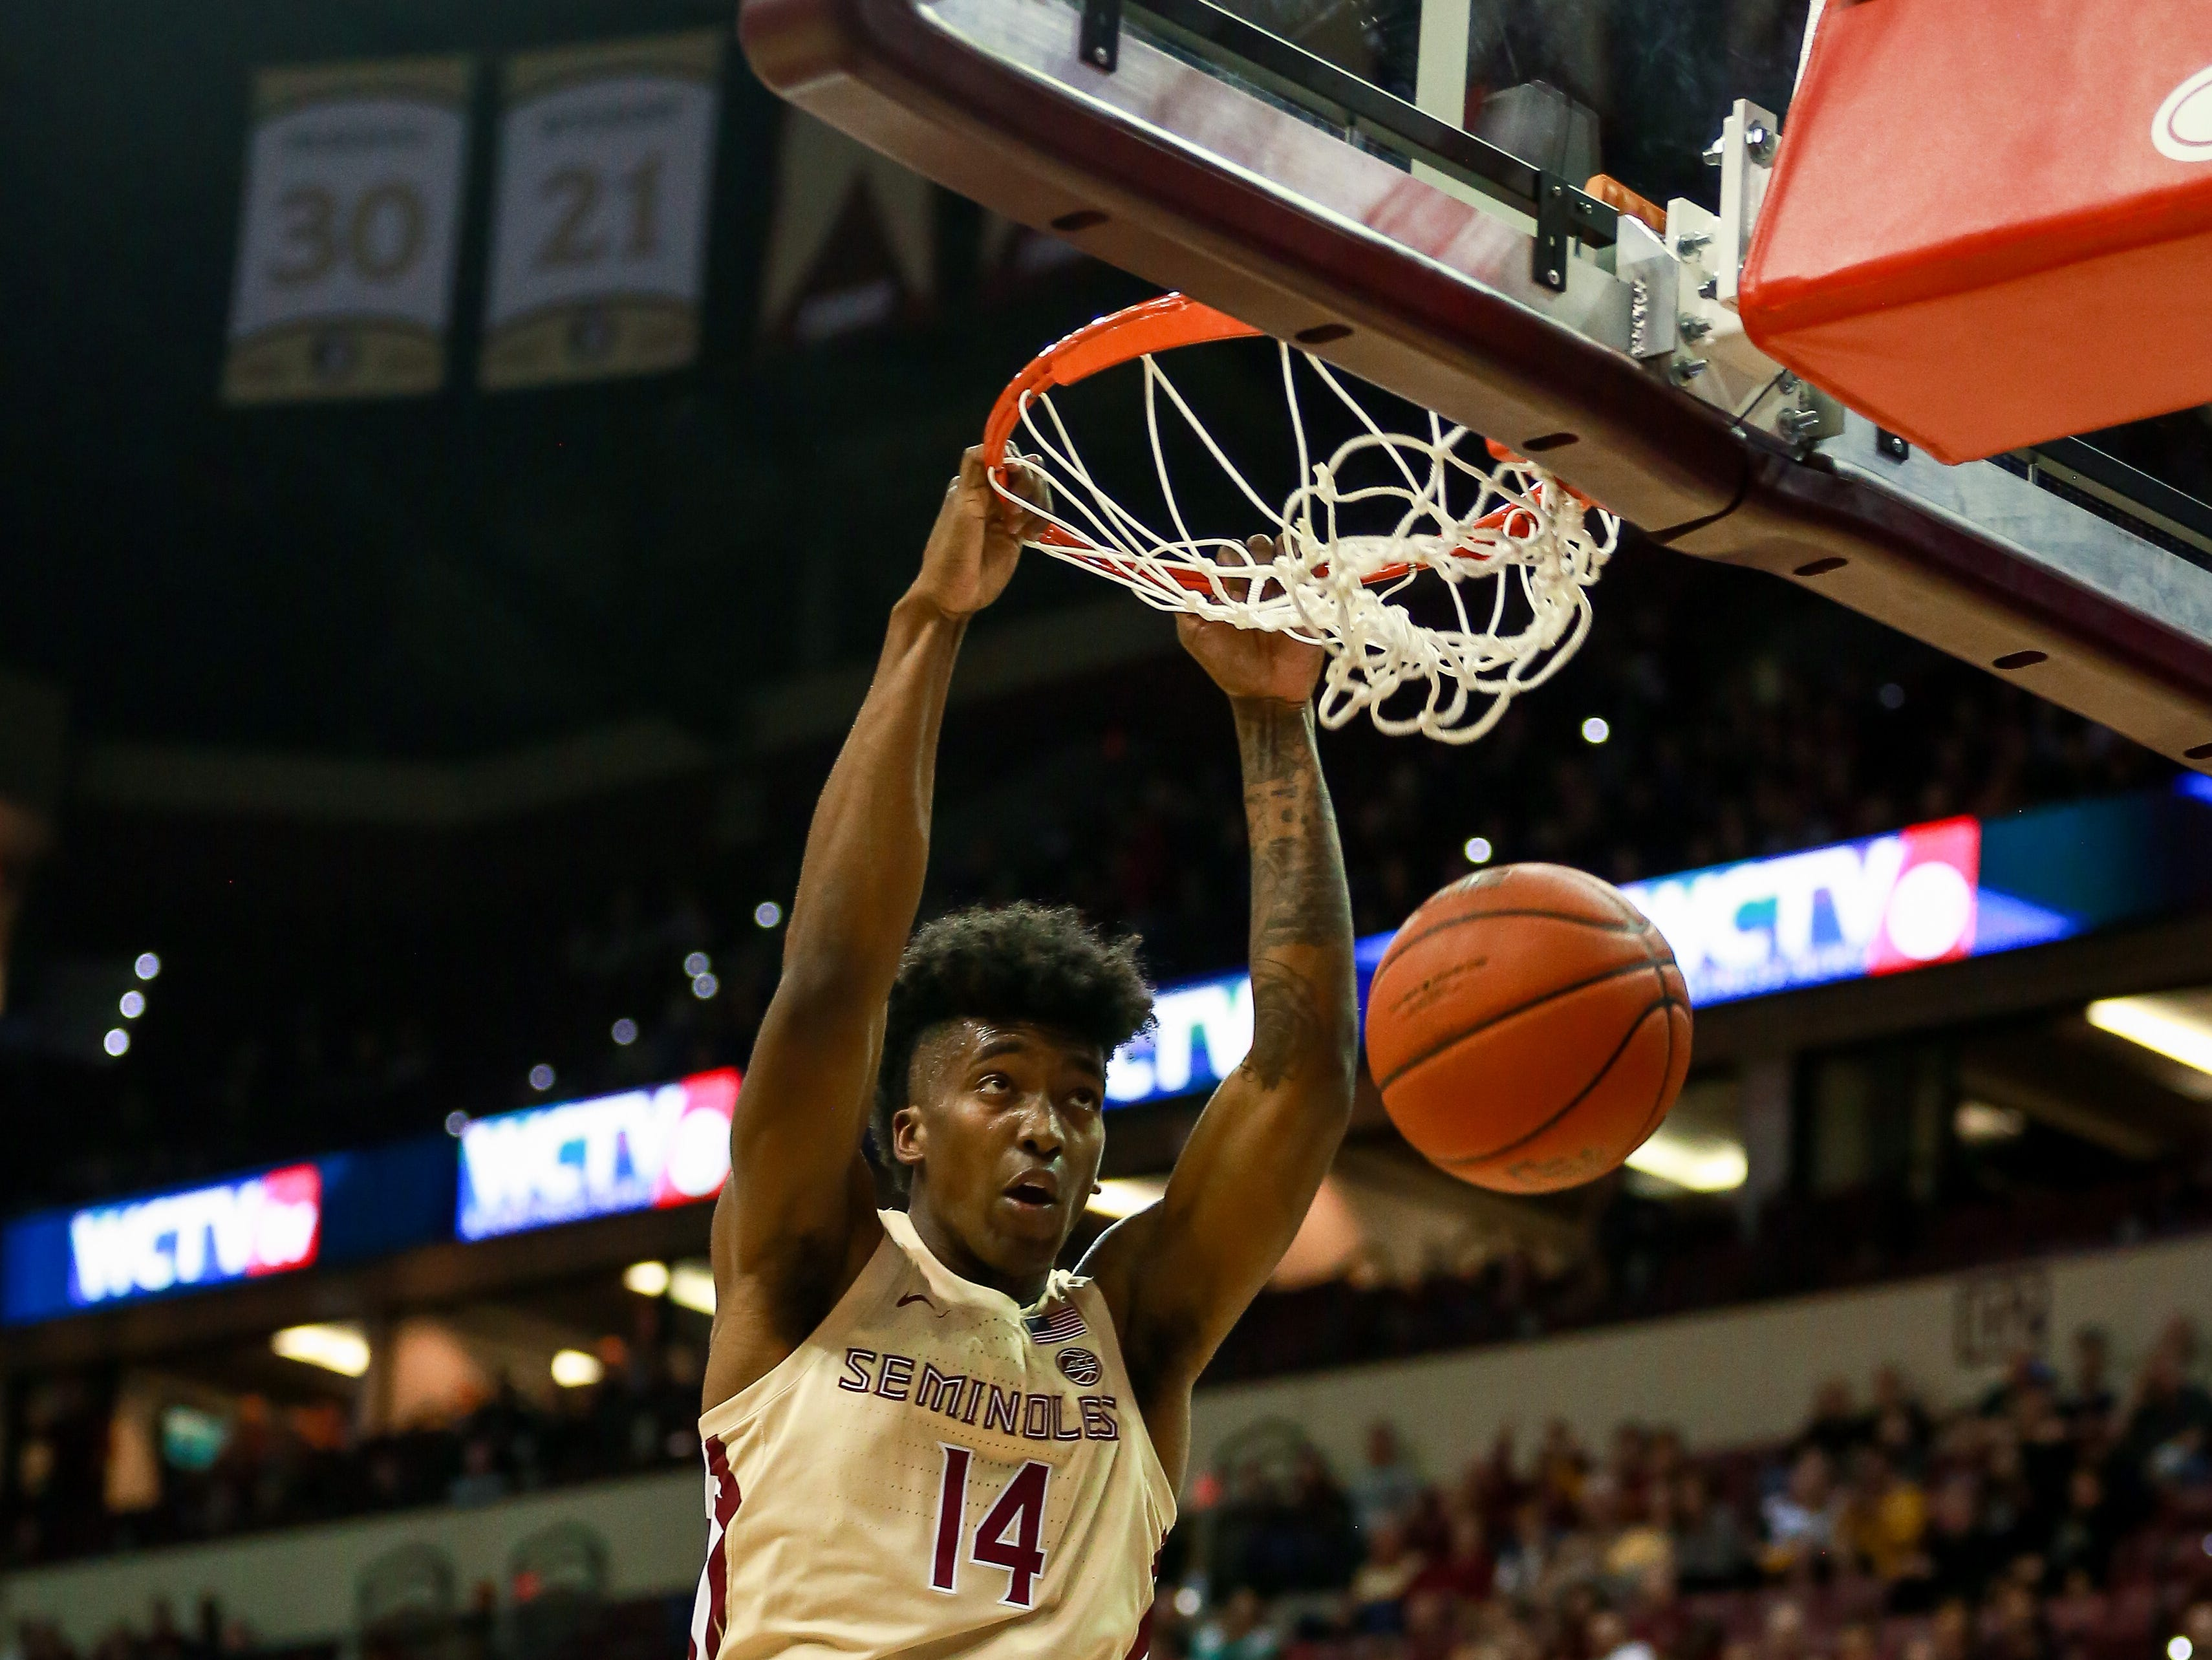 FSU senior guard Terance Mann scored 12 points and grabbed seven rebounds during a victory over Georgia Tech on Saturday at the Tucker Center.